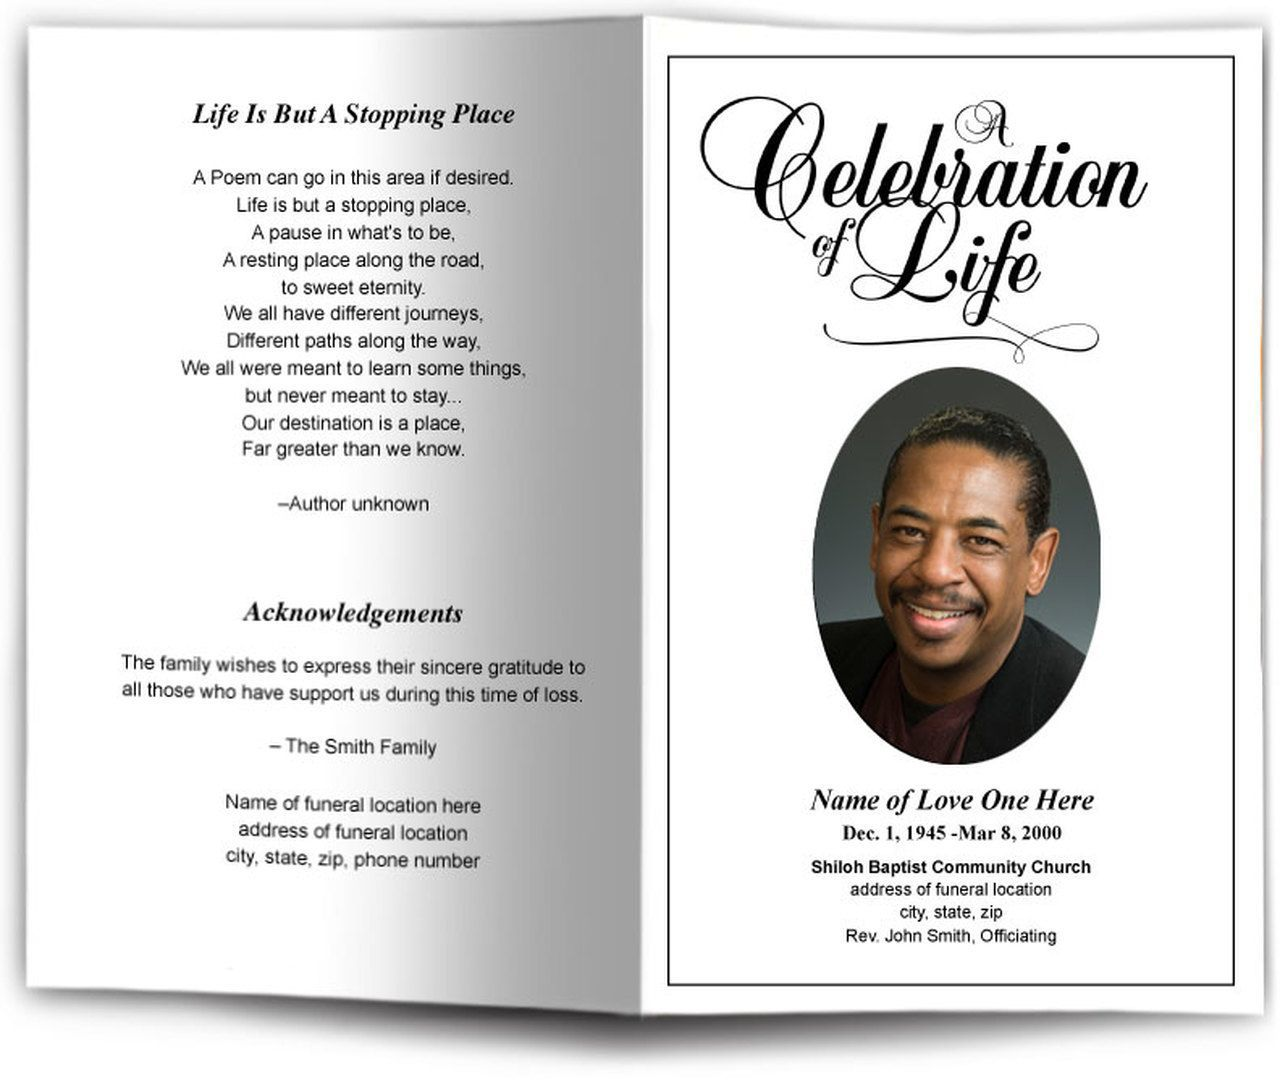 001 Unique Free Celebration Of Life Brochure Template High Definition  FlyerFull